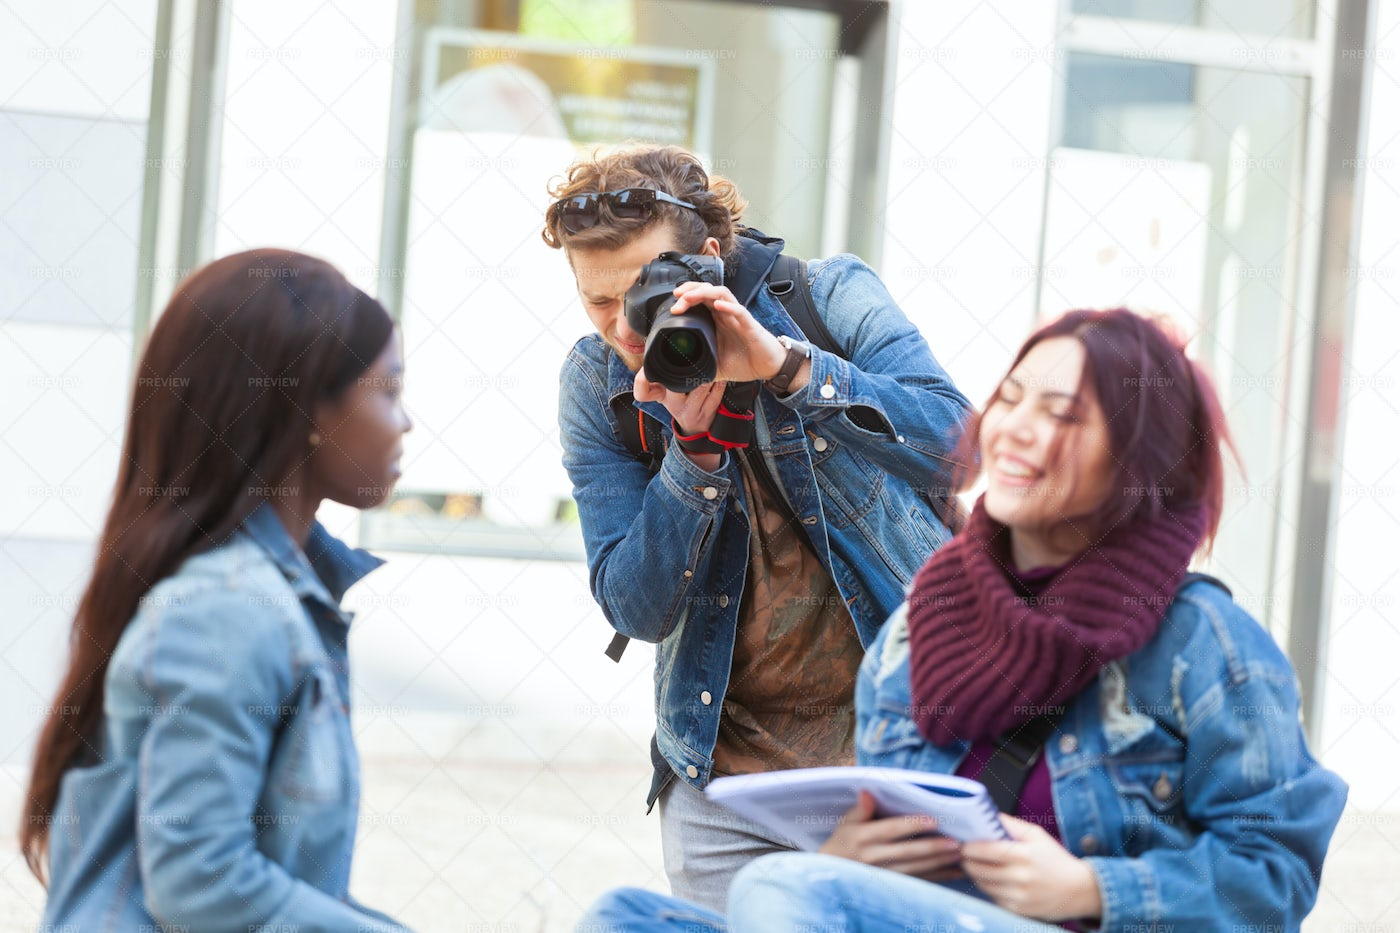 Photographing His Friends: Stock Photos